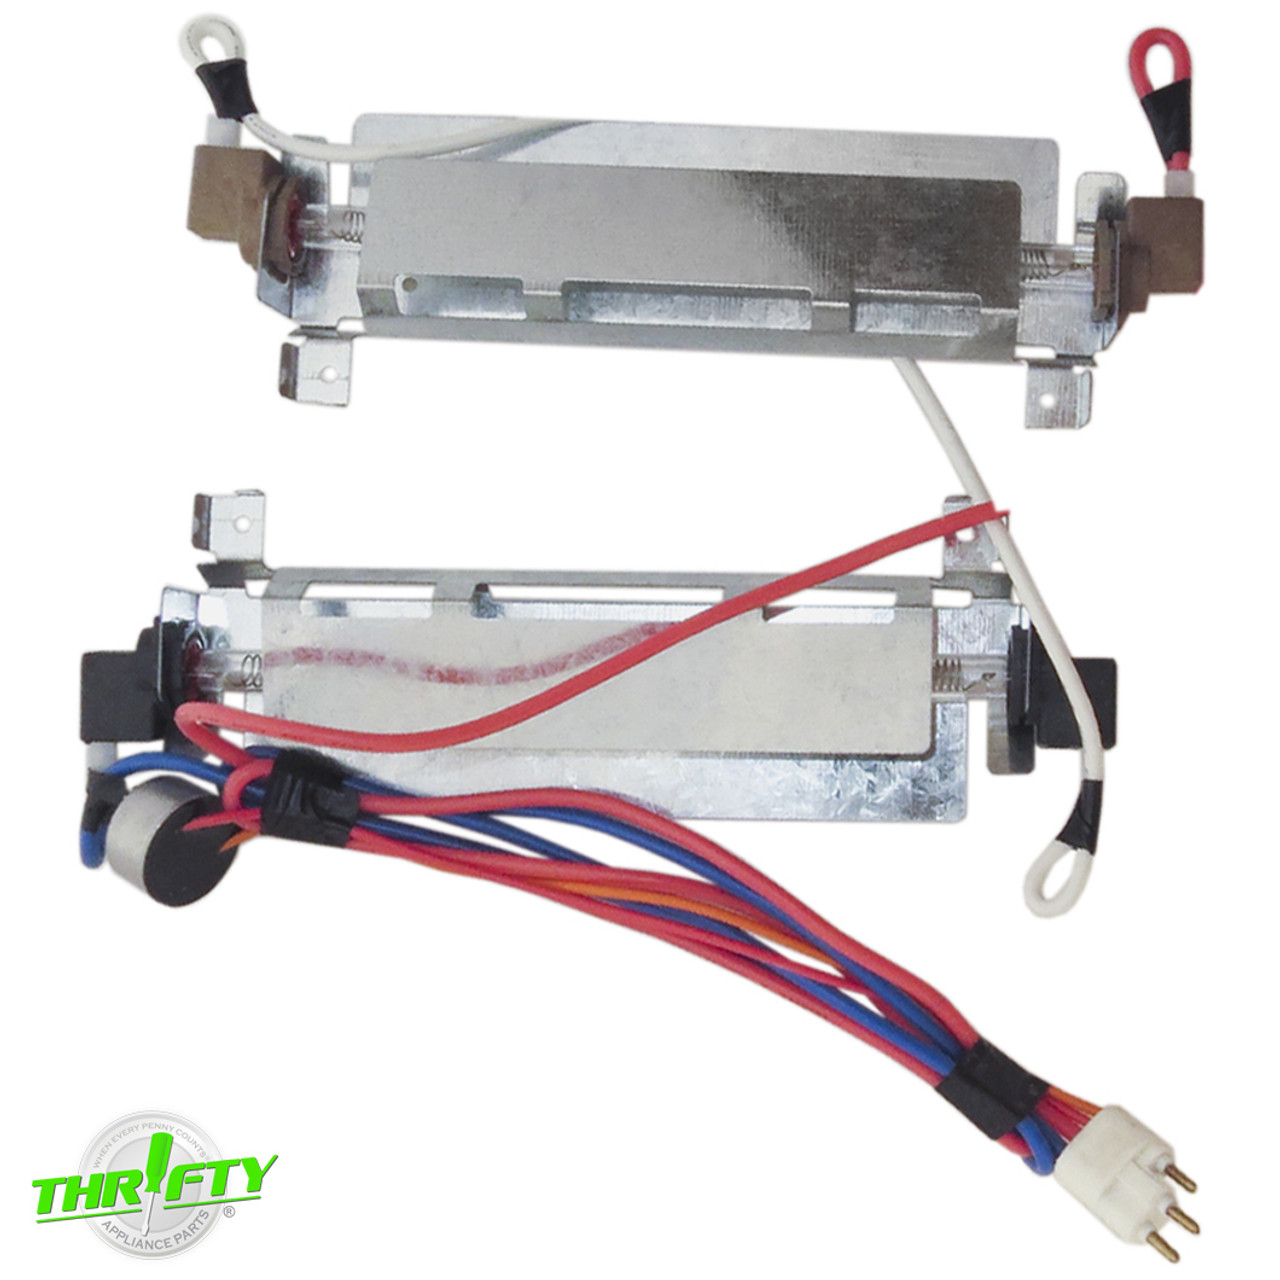 Wr51x442 Ge Defrost Heater Replacement Thrifty Appliance